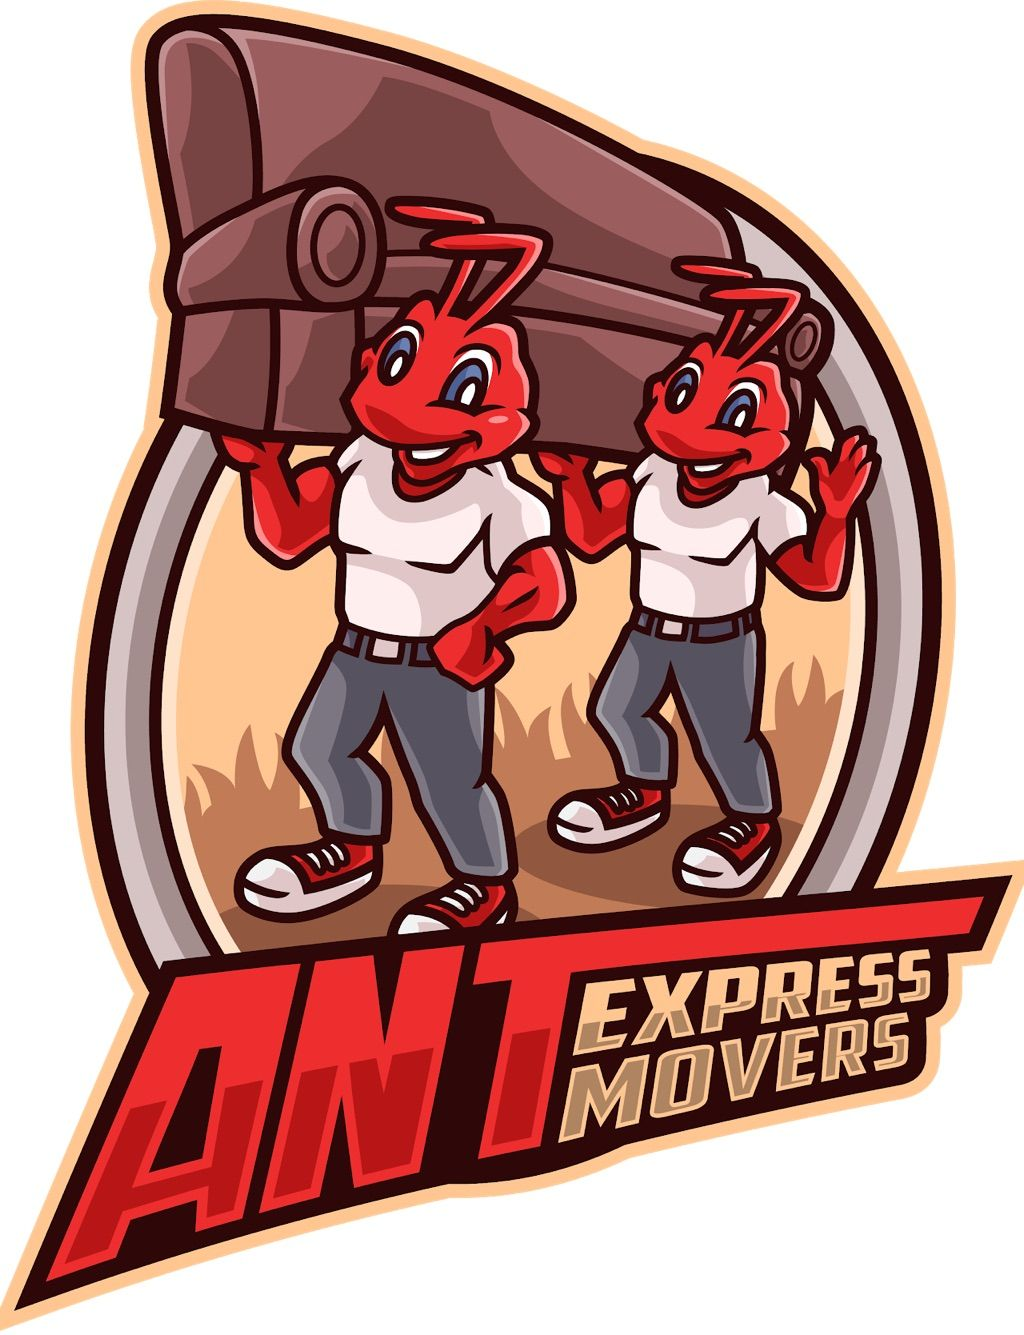 ANT EXPRESS MOVERS ($70/hr)